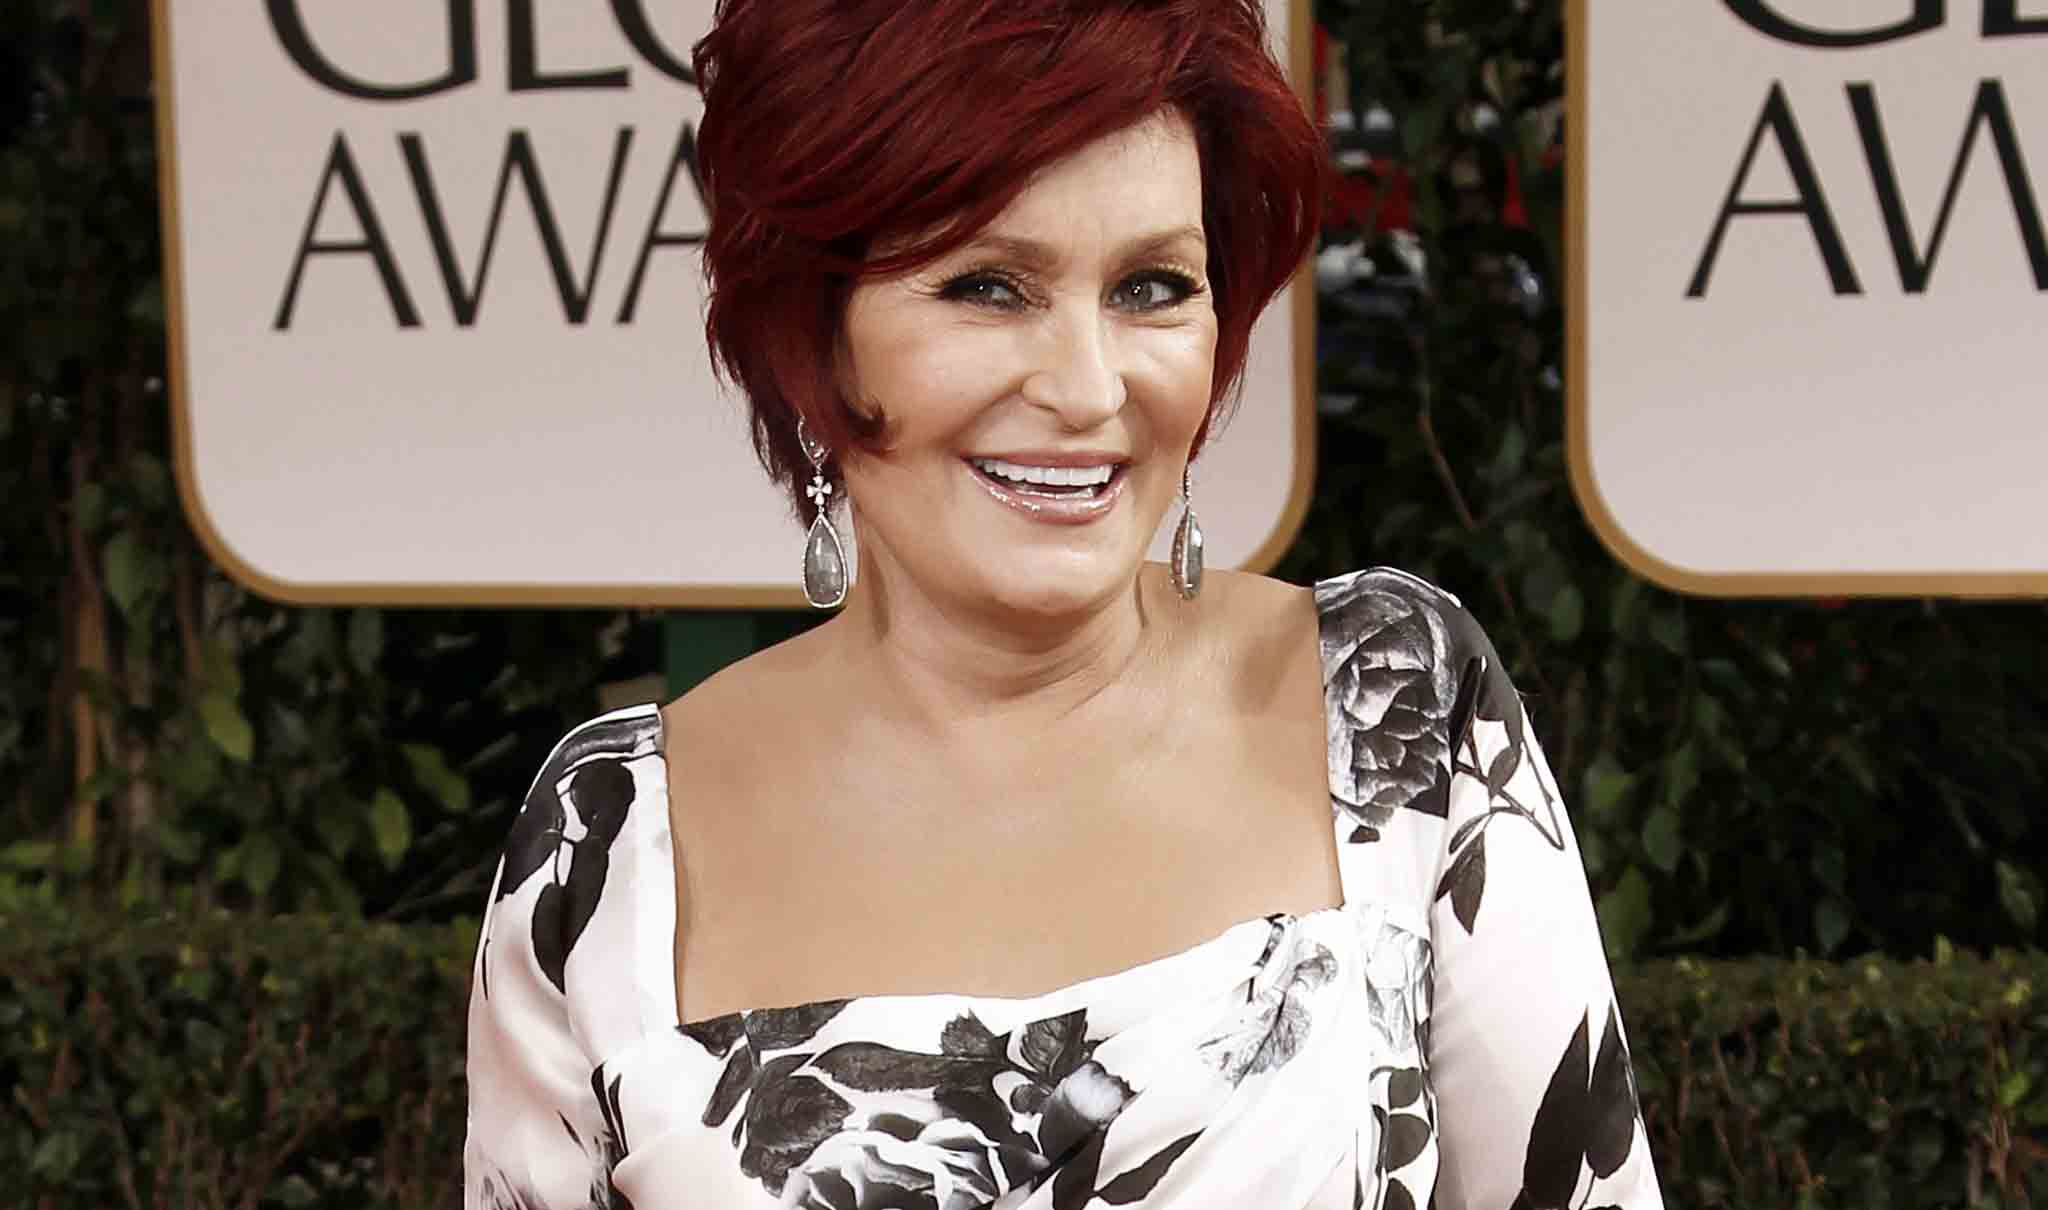 Sharon Osbourne Net worth, Wiki, Career, Married & Statistics